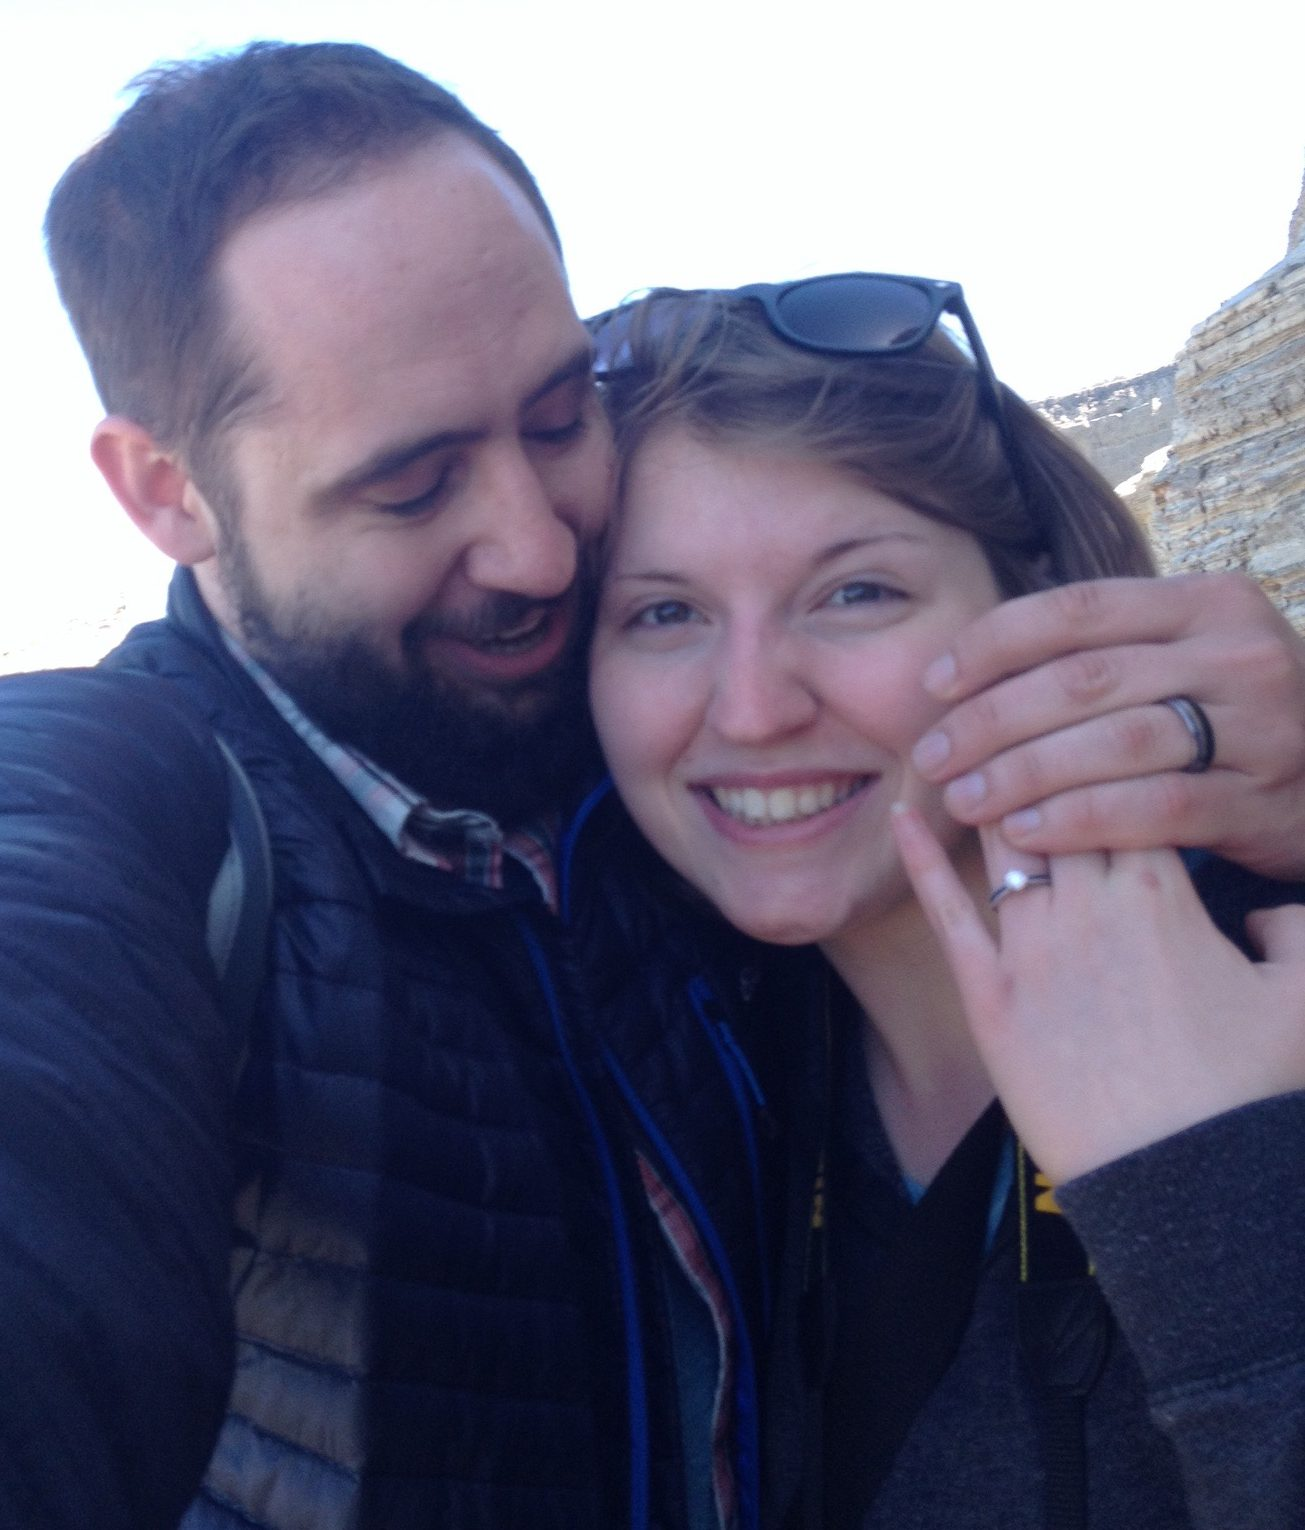 """Obligatory """"just engaged!"""" selfie, of course. :)"""